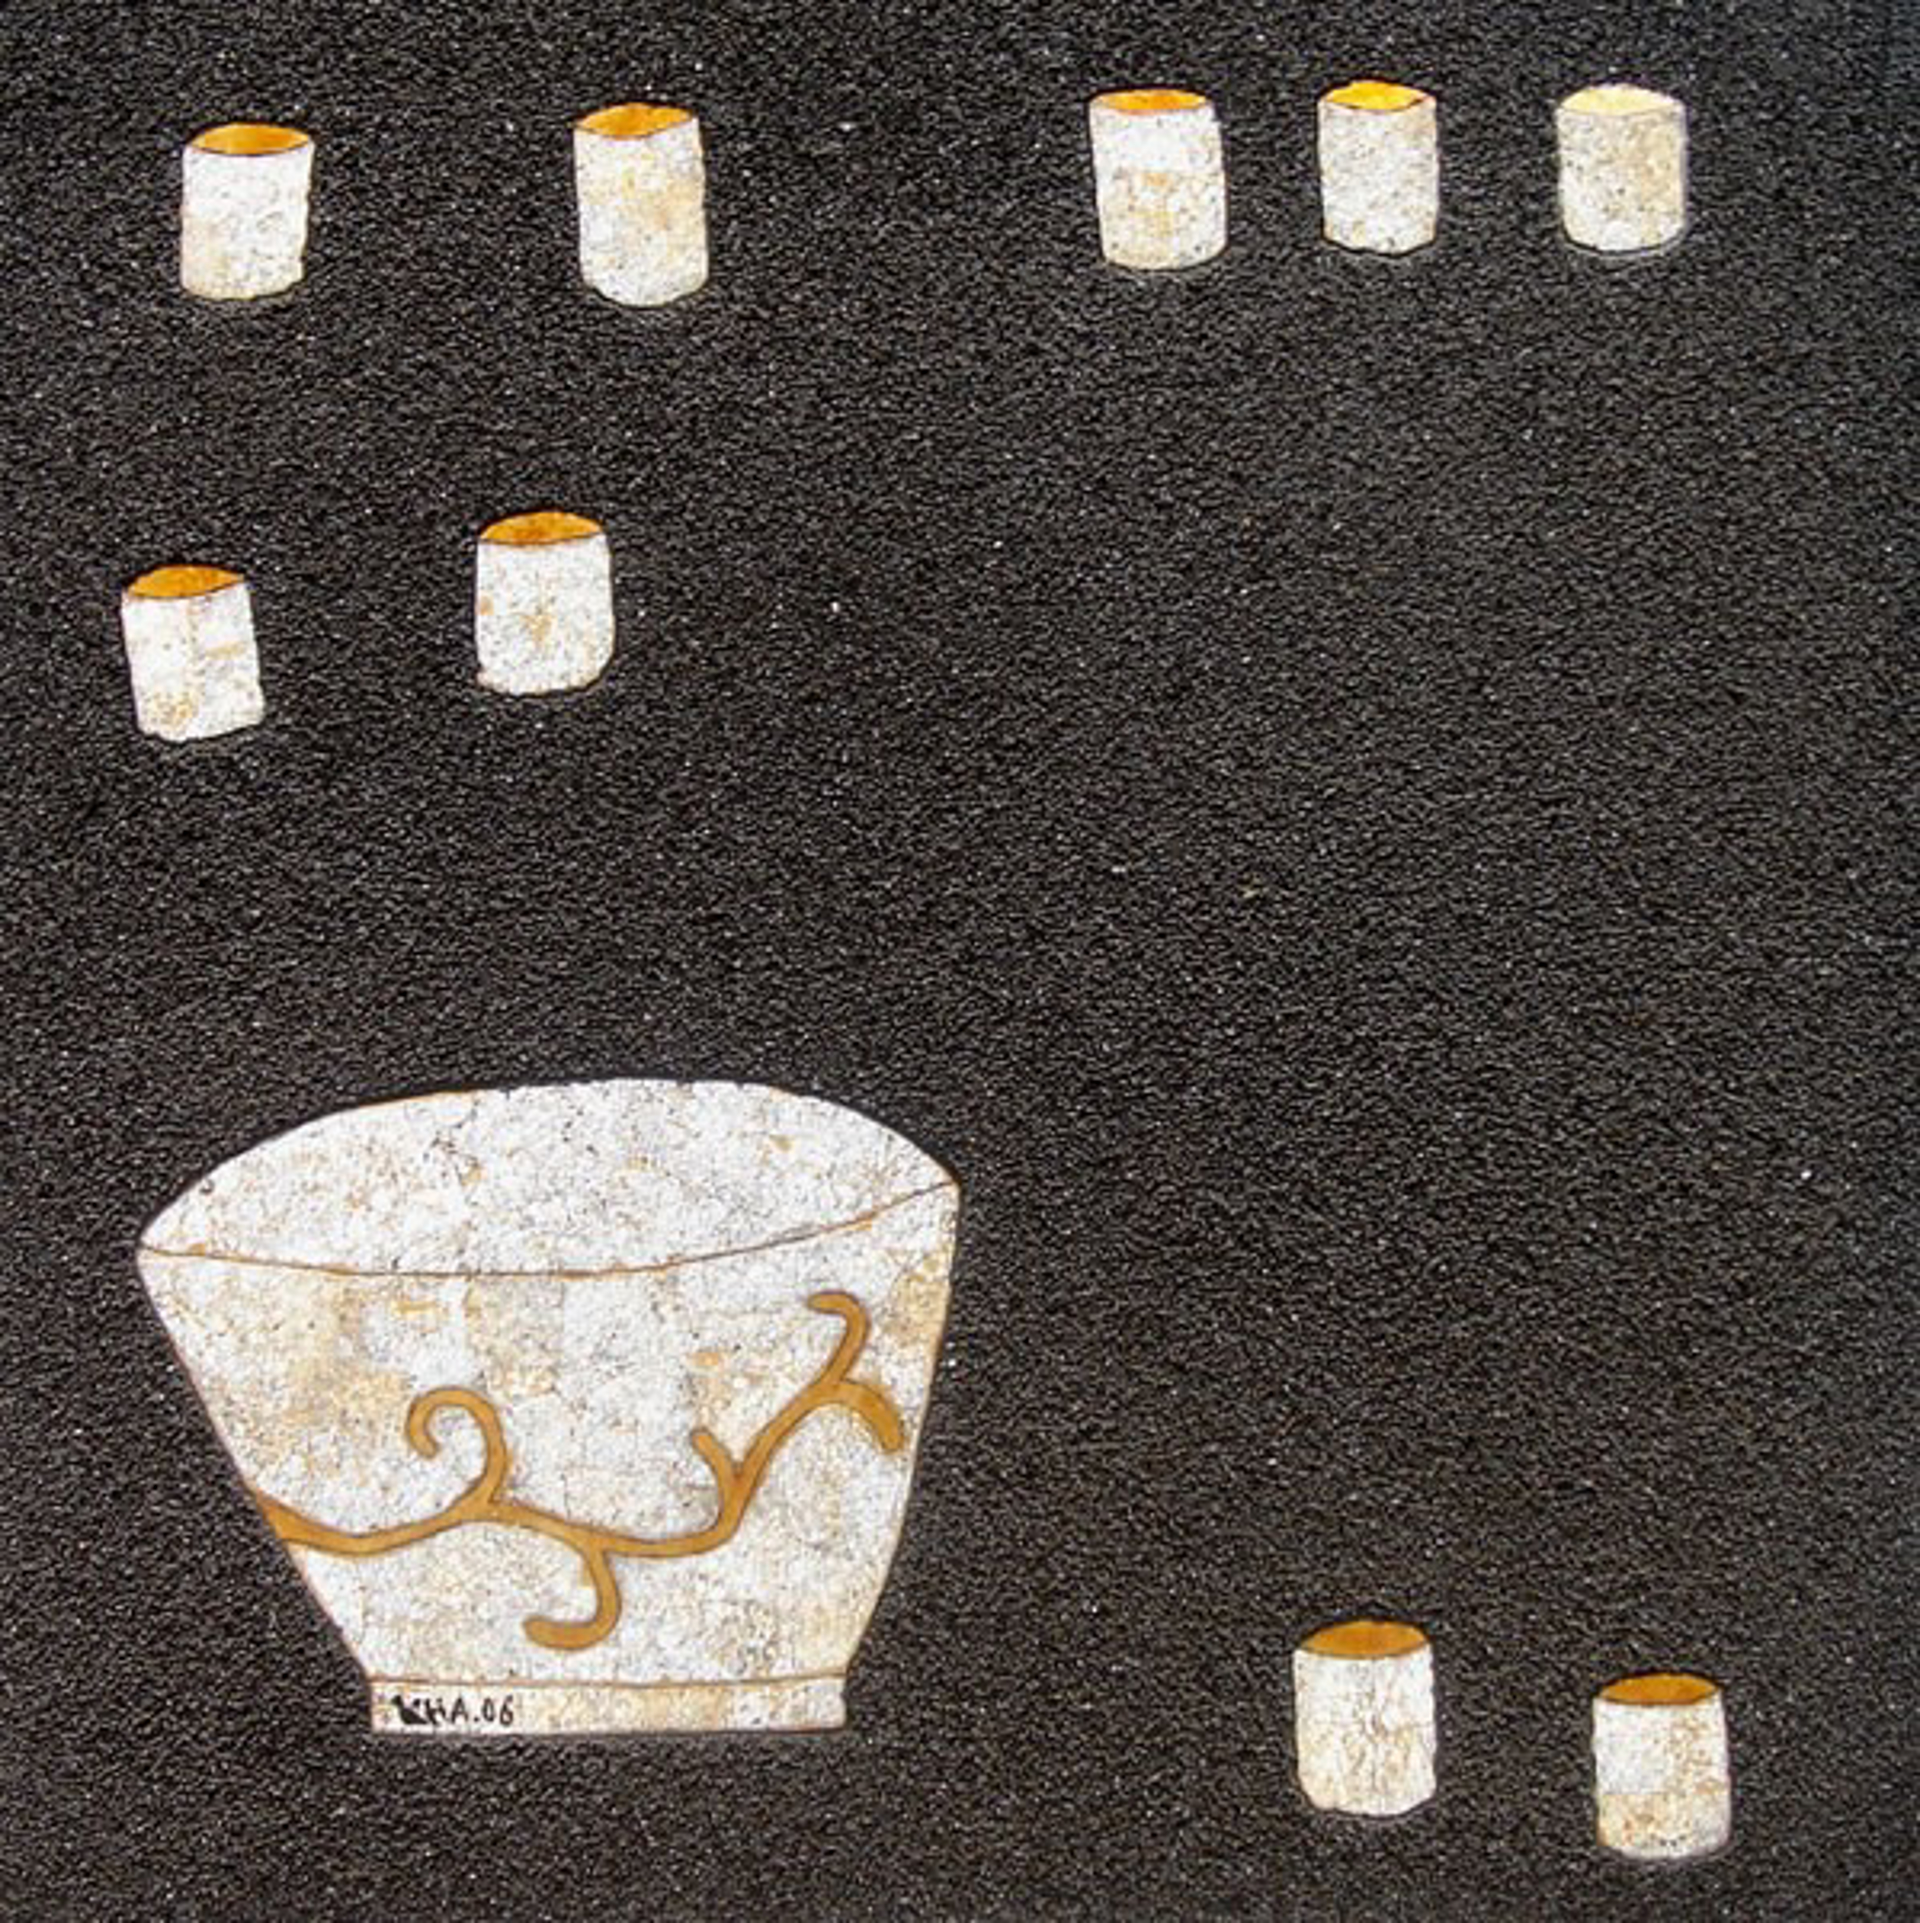 Bowl and Teacups II by Bui Cong Khanh